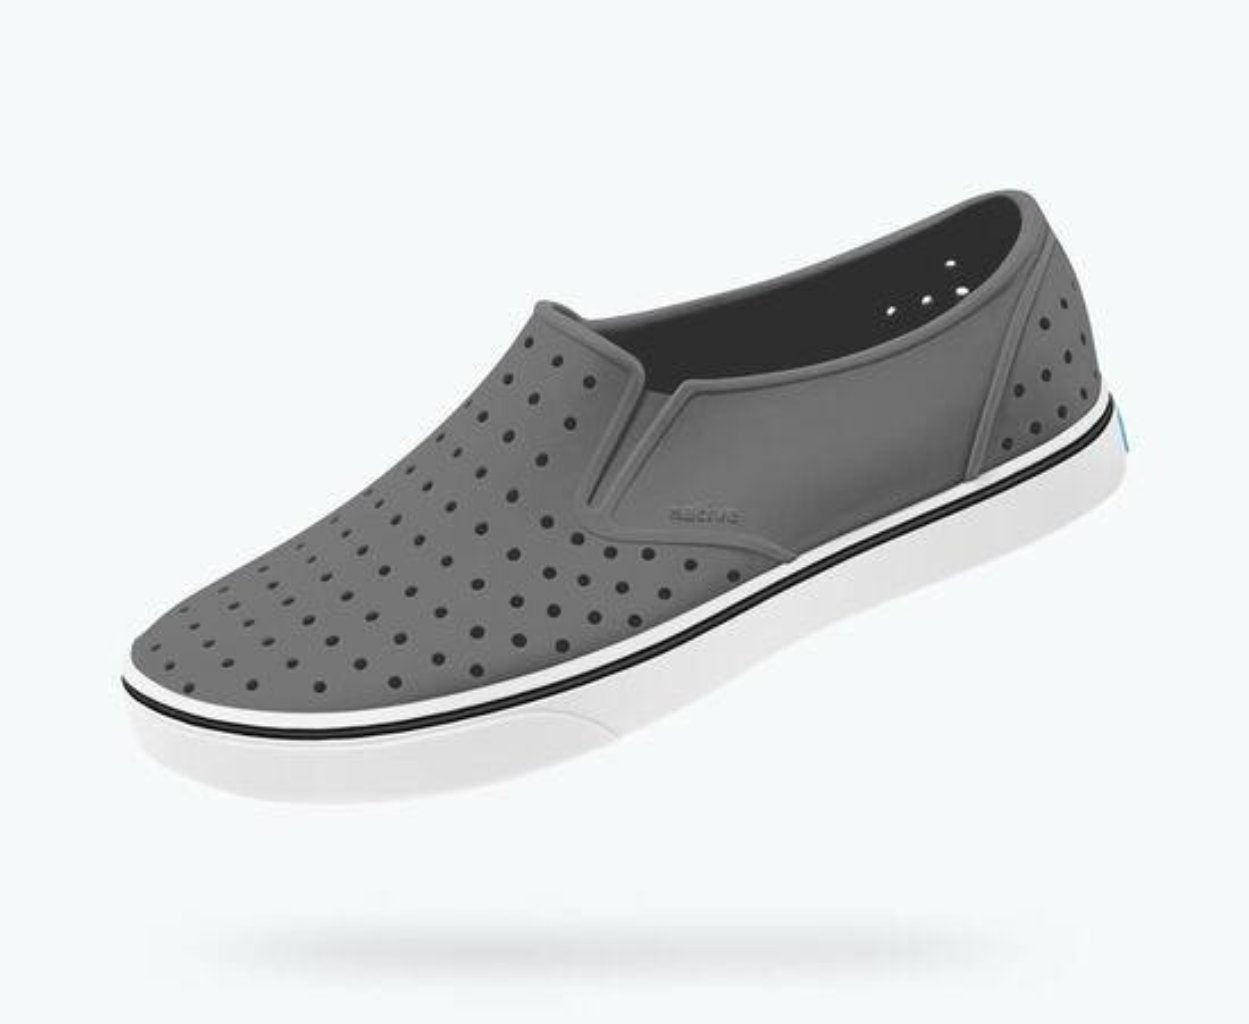 Natives Miles Child in Dublin Grey/Shell White